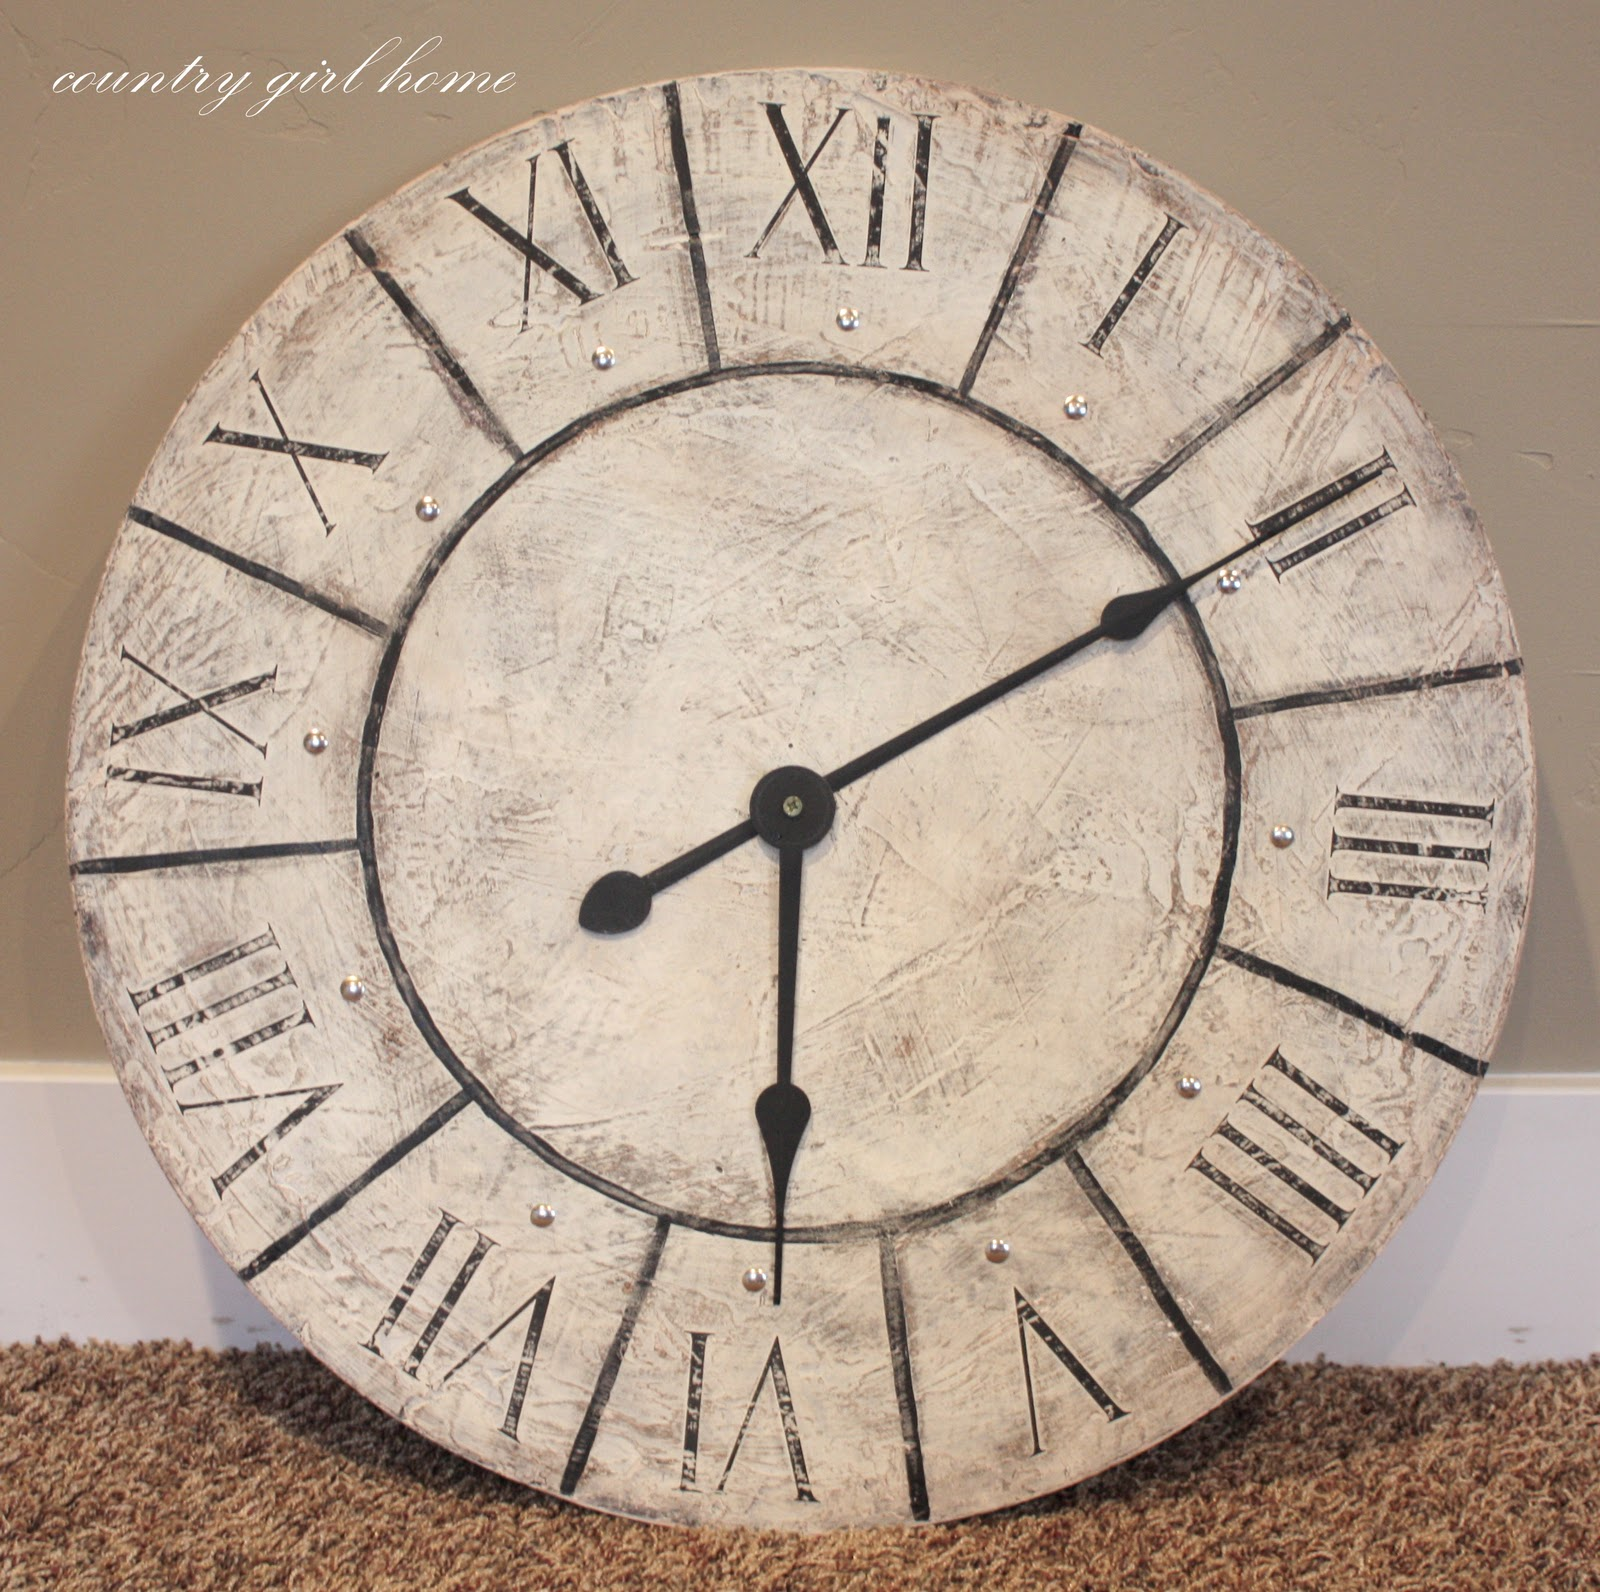 country girl home large wall clock re do. Black Bedroom Furniture Sets. Home Design Ideas